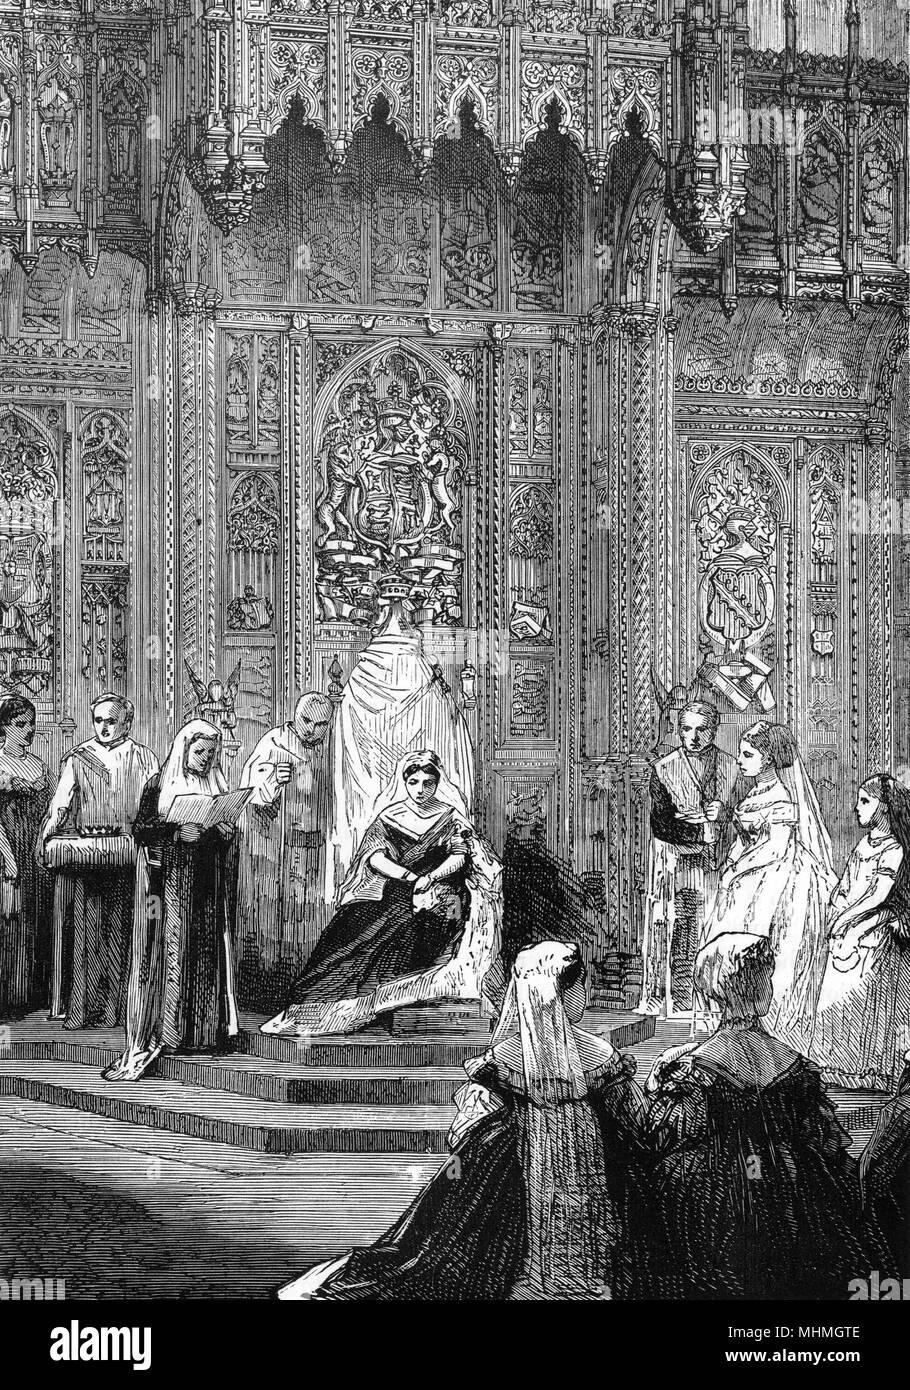 Queen Victoria attends the State Opening of Parliament. The Queen's speech is read to the assembled Lords and Members.     Date: 1871 - Stock Image